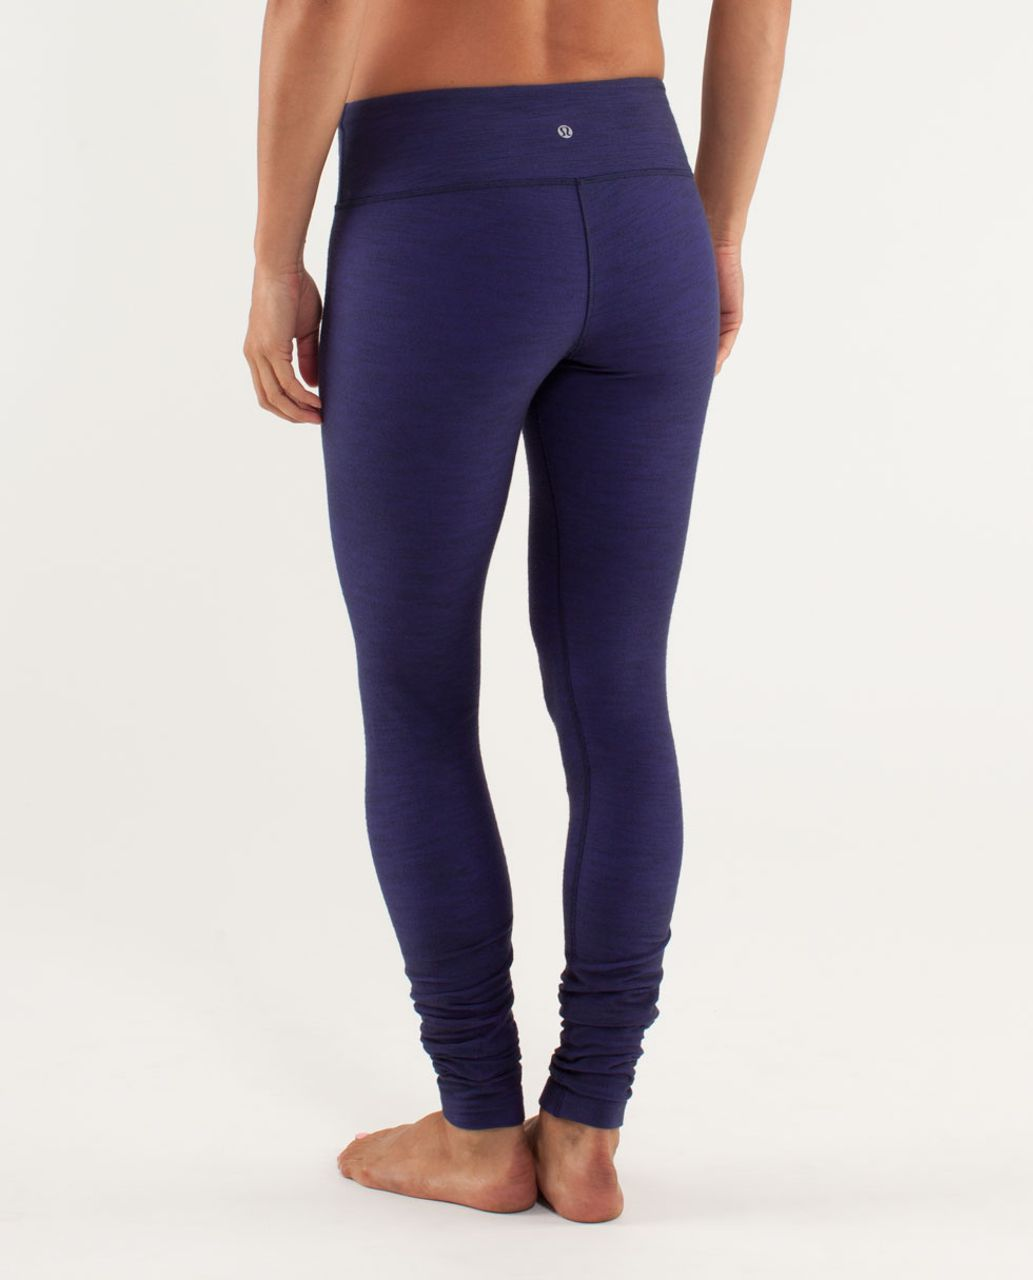 Lululemon Wunder Under Pant *Denim - Deep Indigo Slub Denim